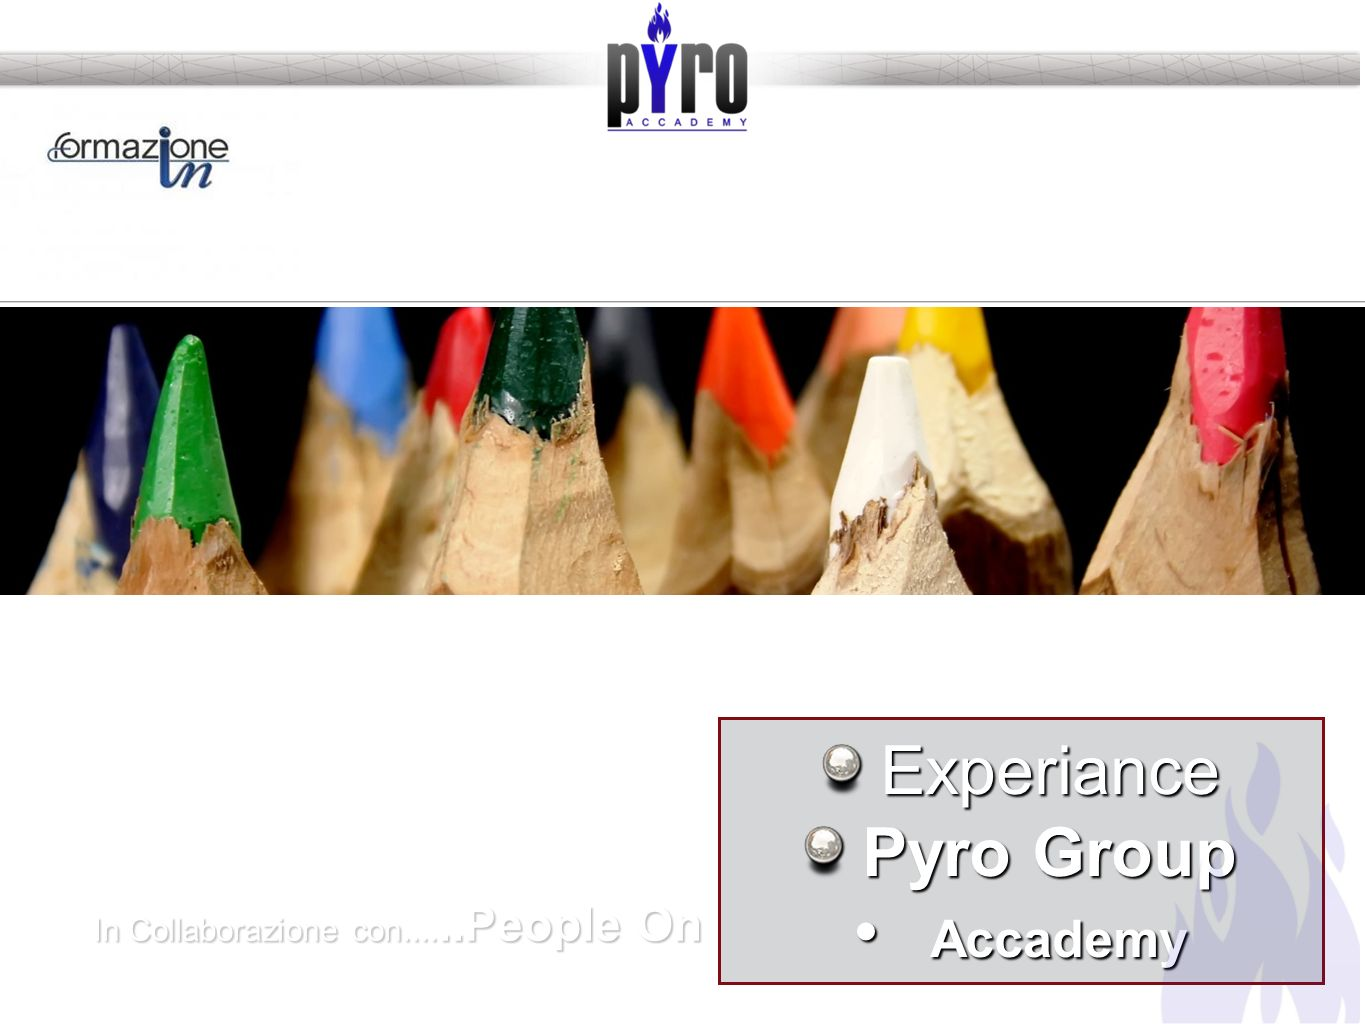 Experiance Pyro Group Accademy Accademy Formazione Comunicazione Marketing In Collaborazione con......People On In Collaborazione con......People On